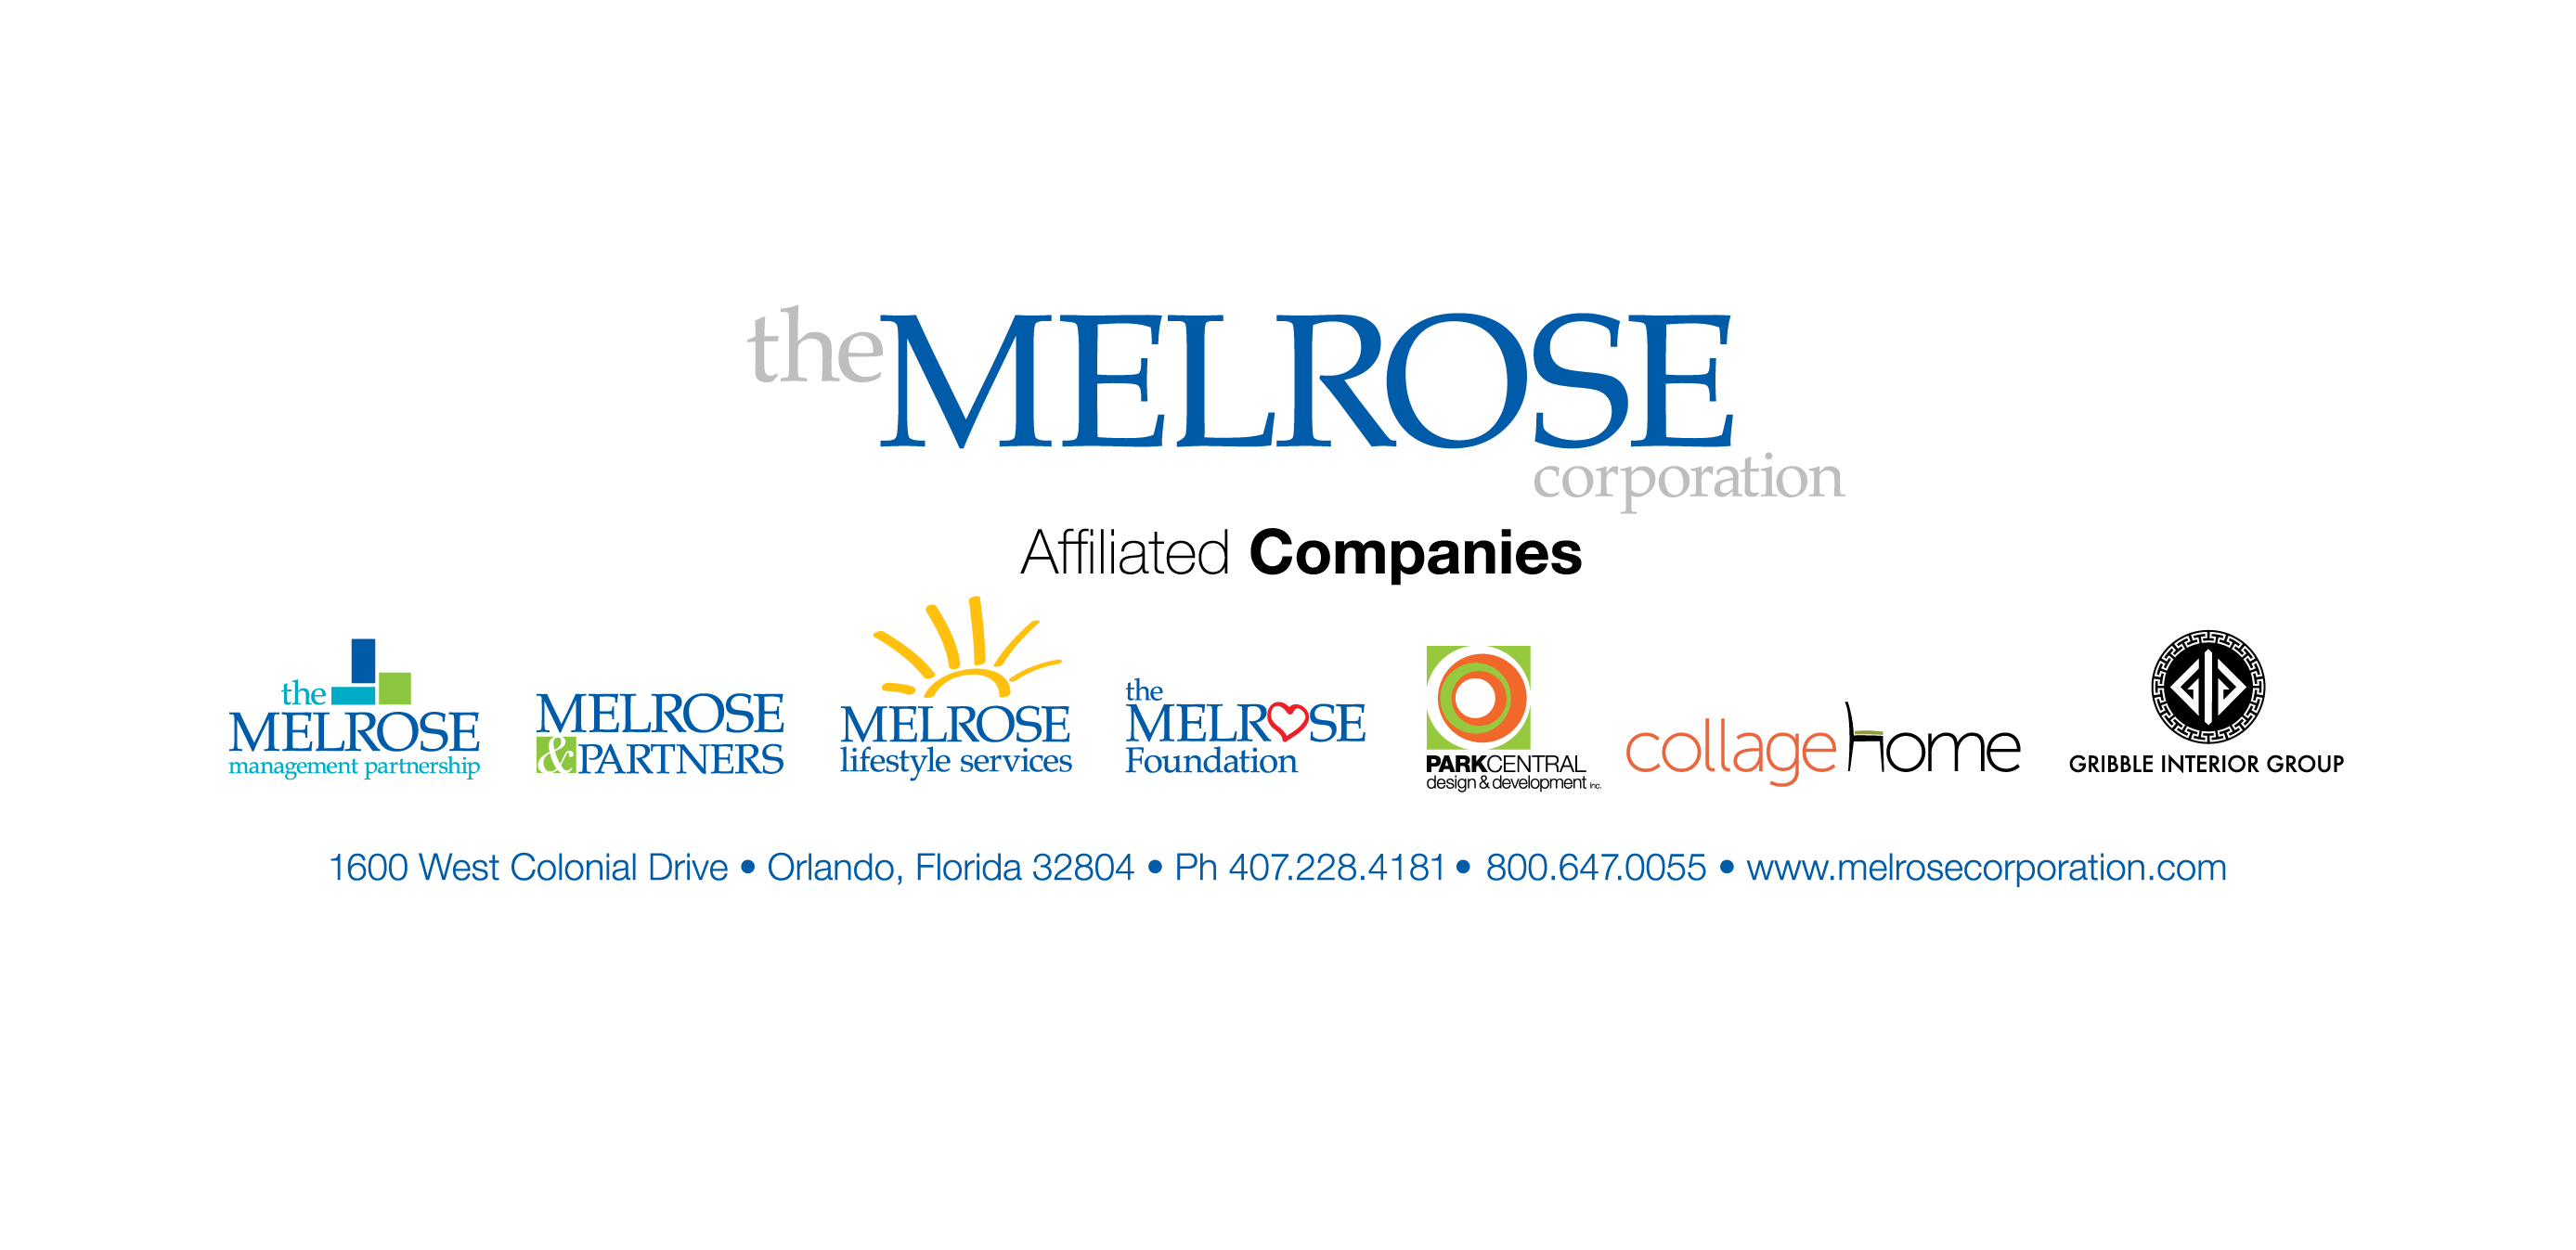 The Melrose Corporation